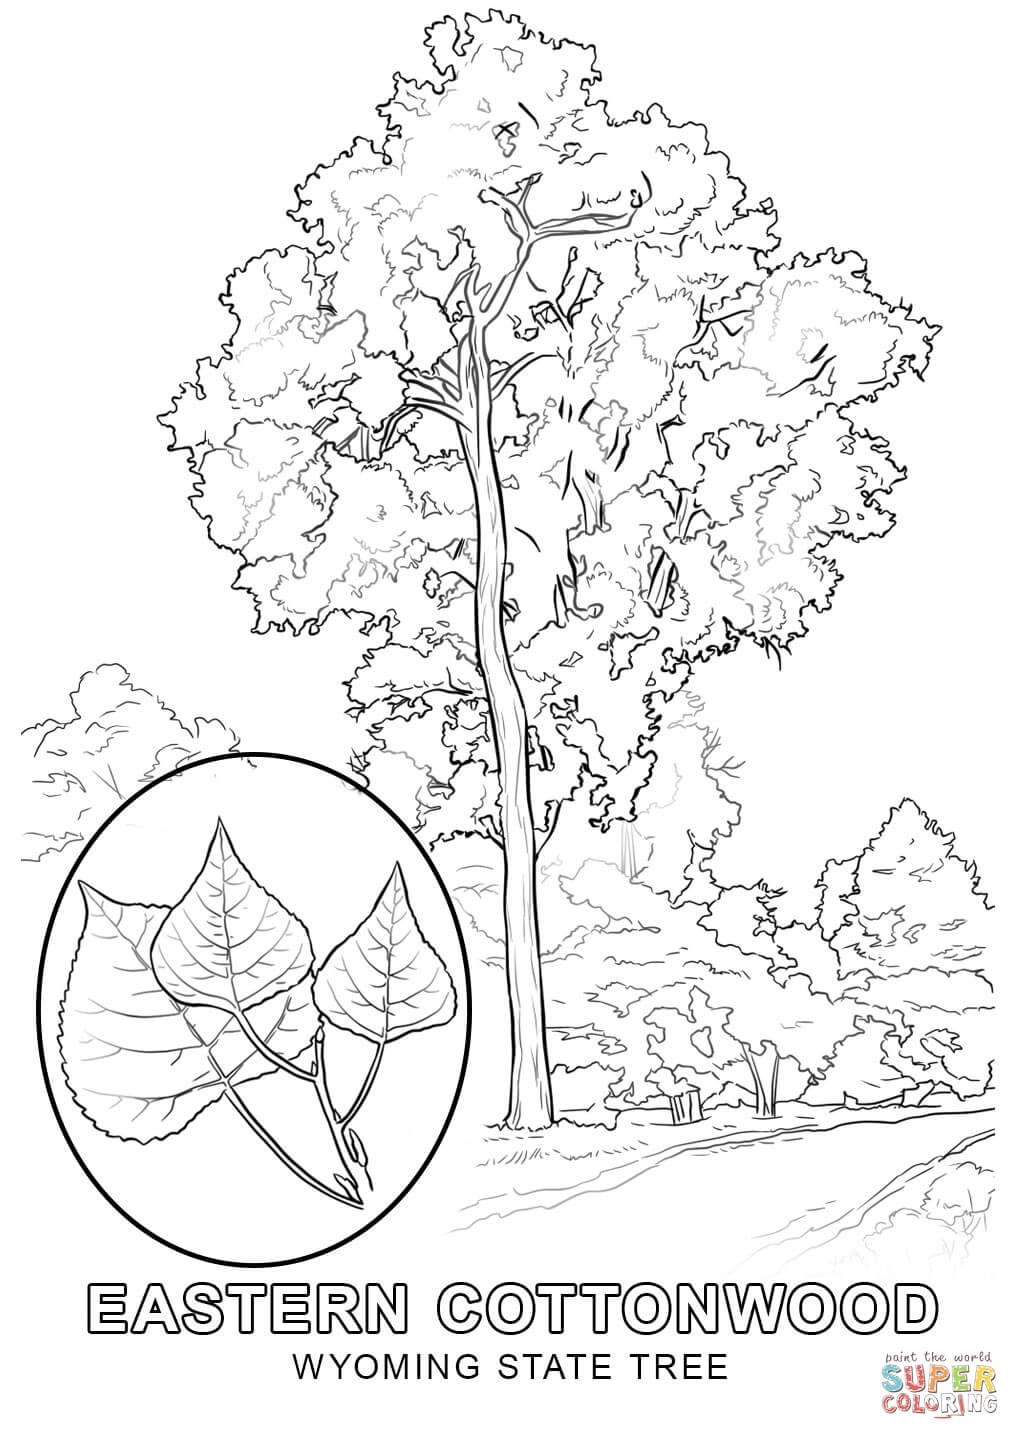 state tree coloring pages - florida state tree coloring page coloring pages